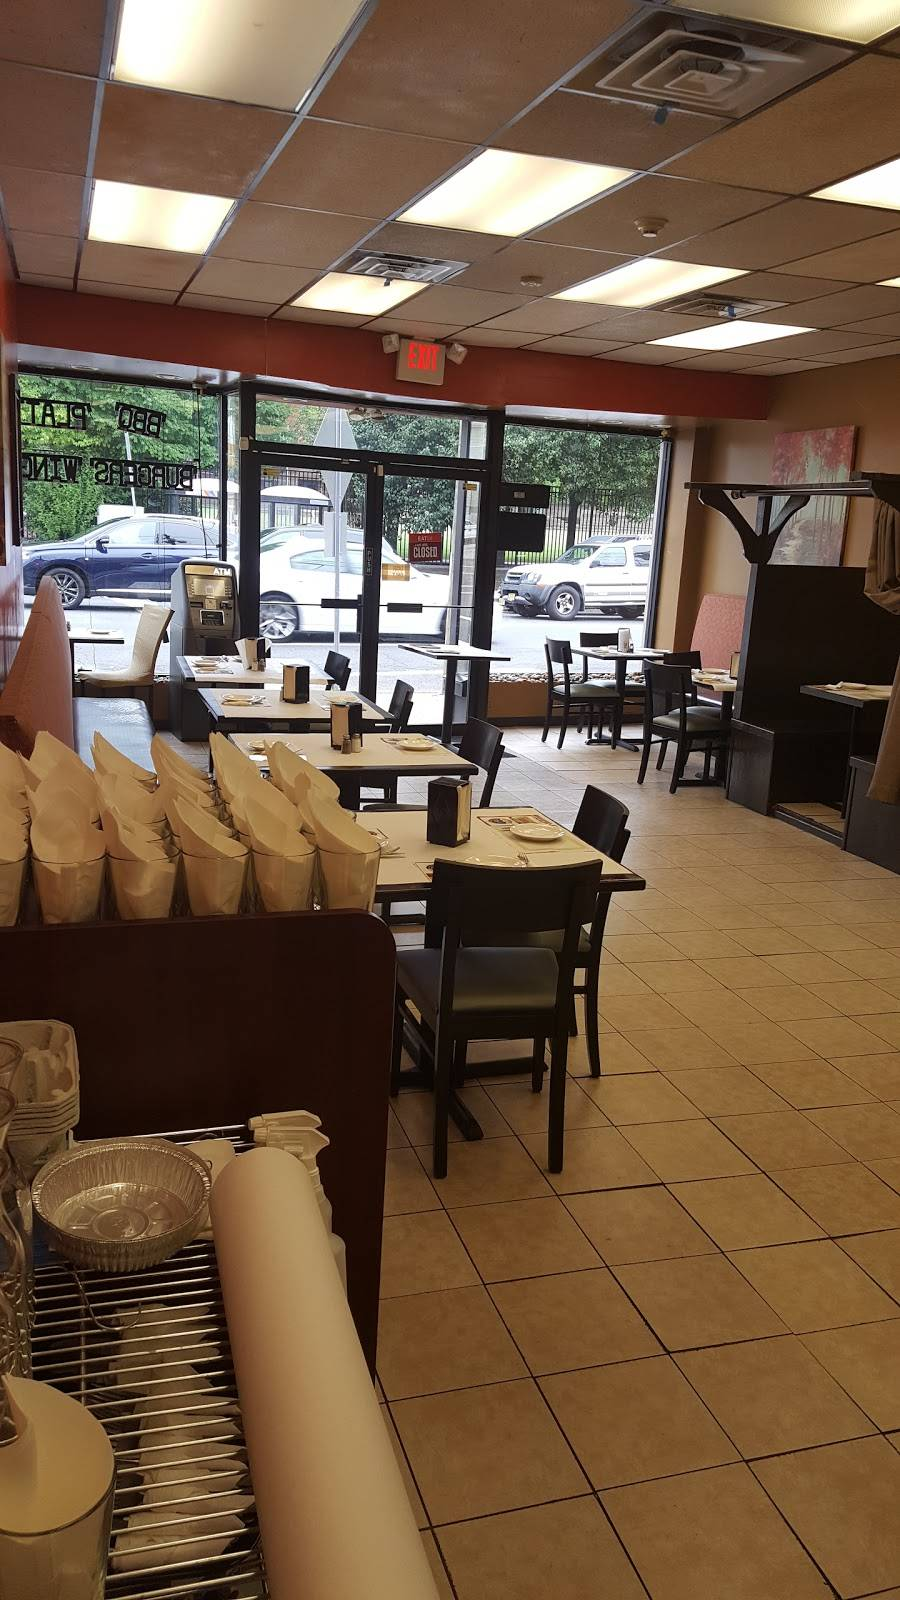 Addys Barbeque Teaneck | meal delivery | 1199 Teaneck Rd, Teaneck, NJ 07666, USA | 2015307111 OR +1 201-530-7111